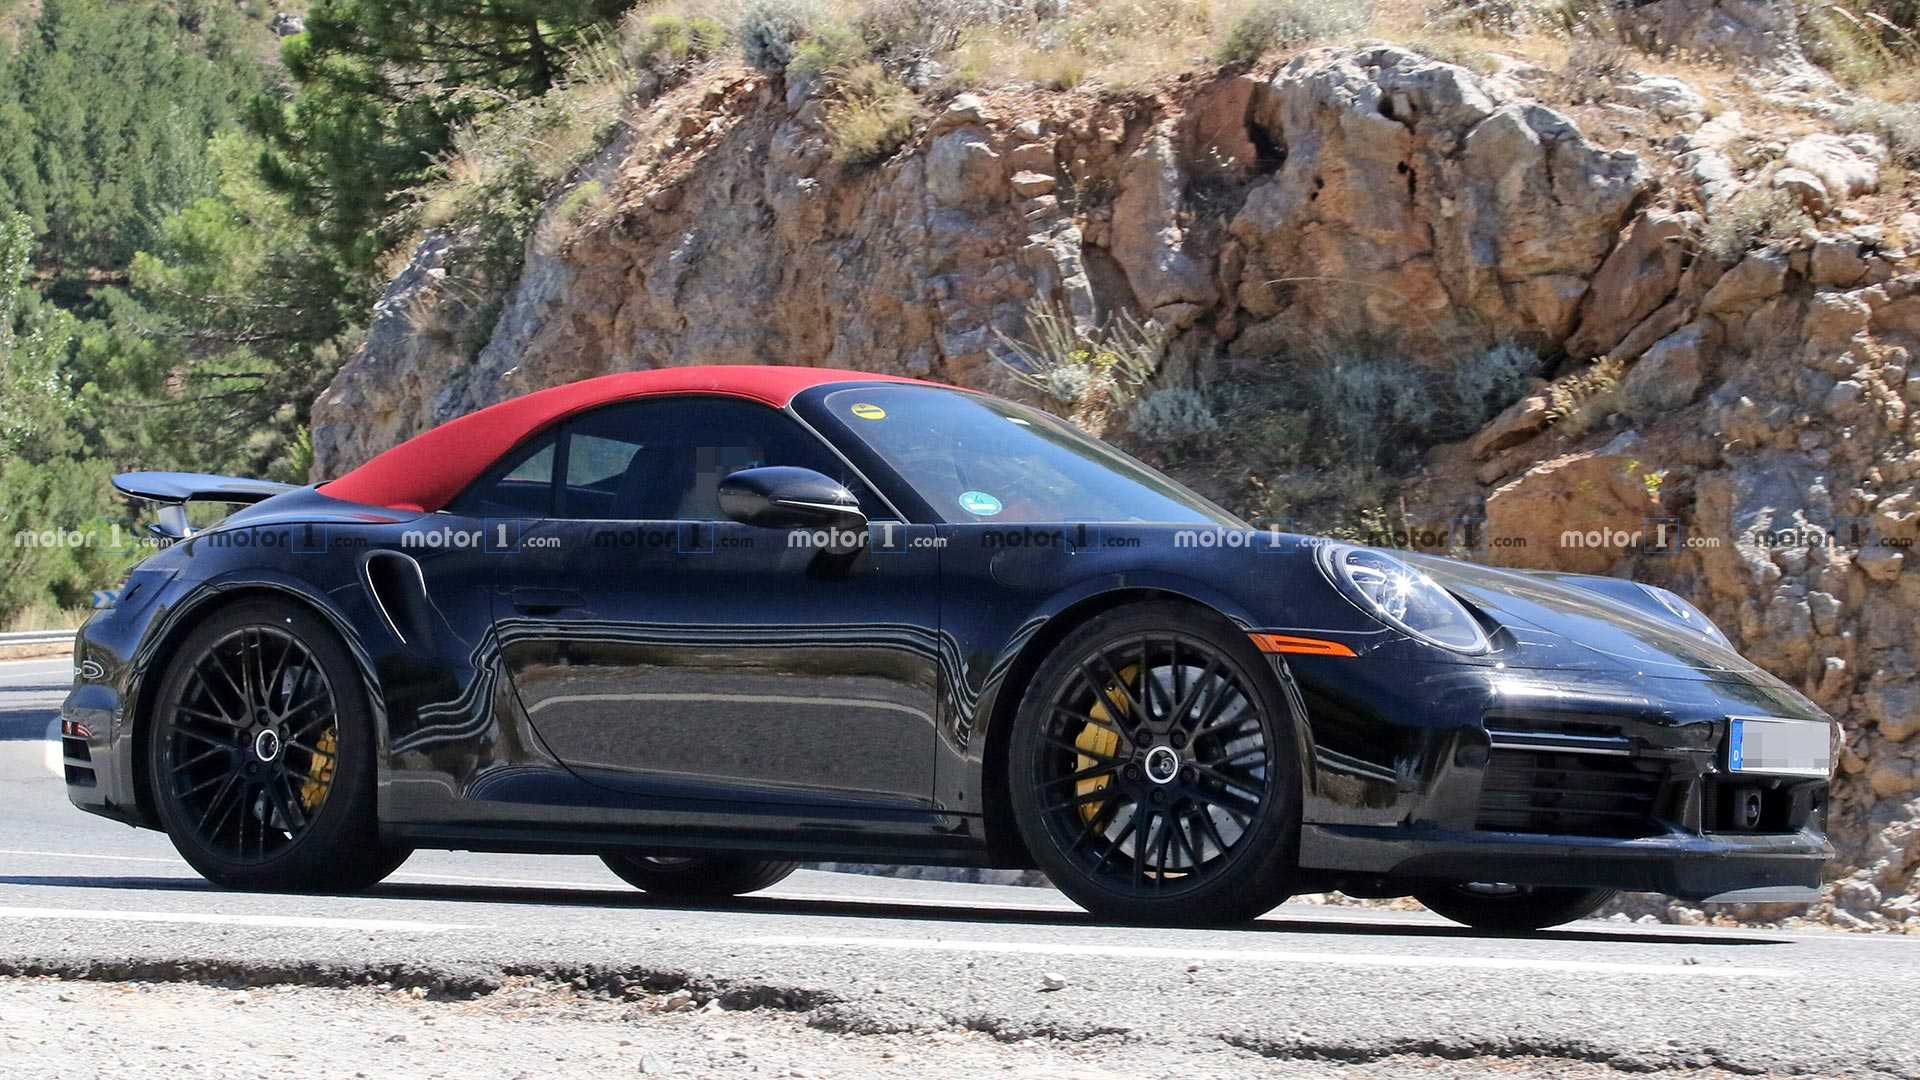 Porsche 911 Turbo Cabriolet Spied Wearing Eye Catching Red Roof